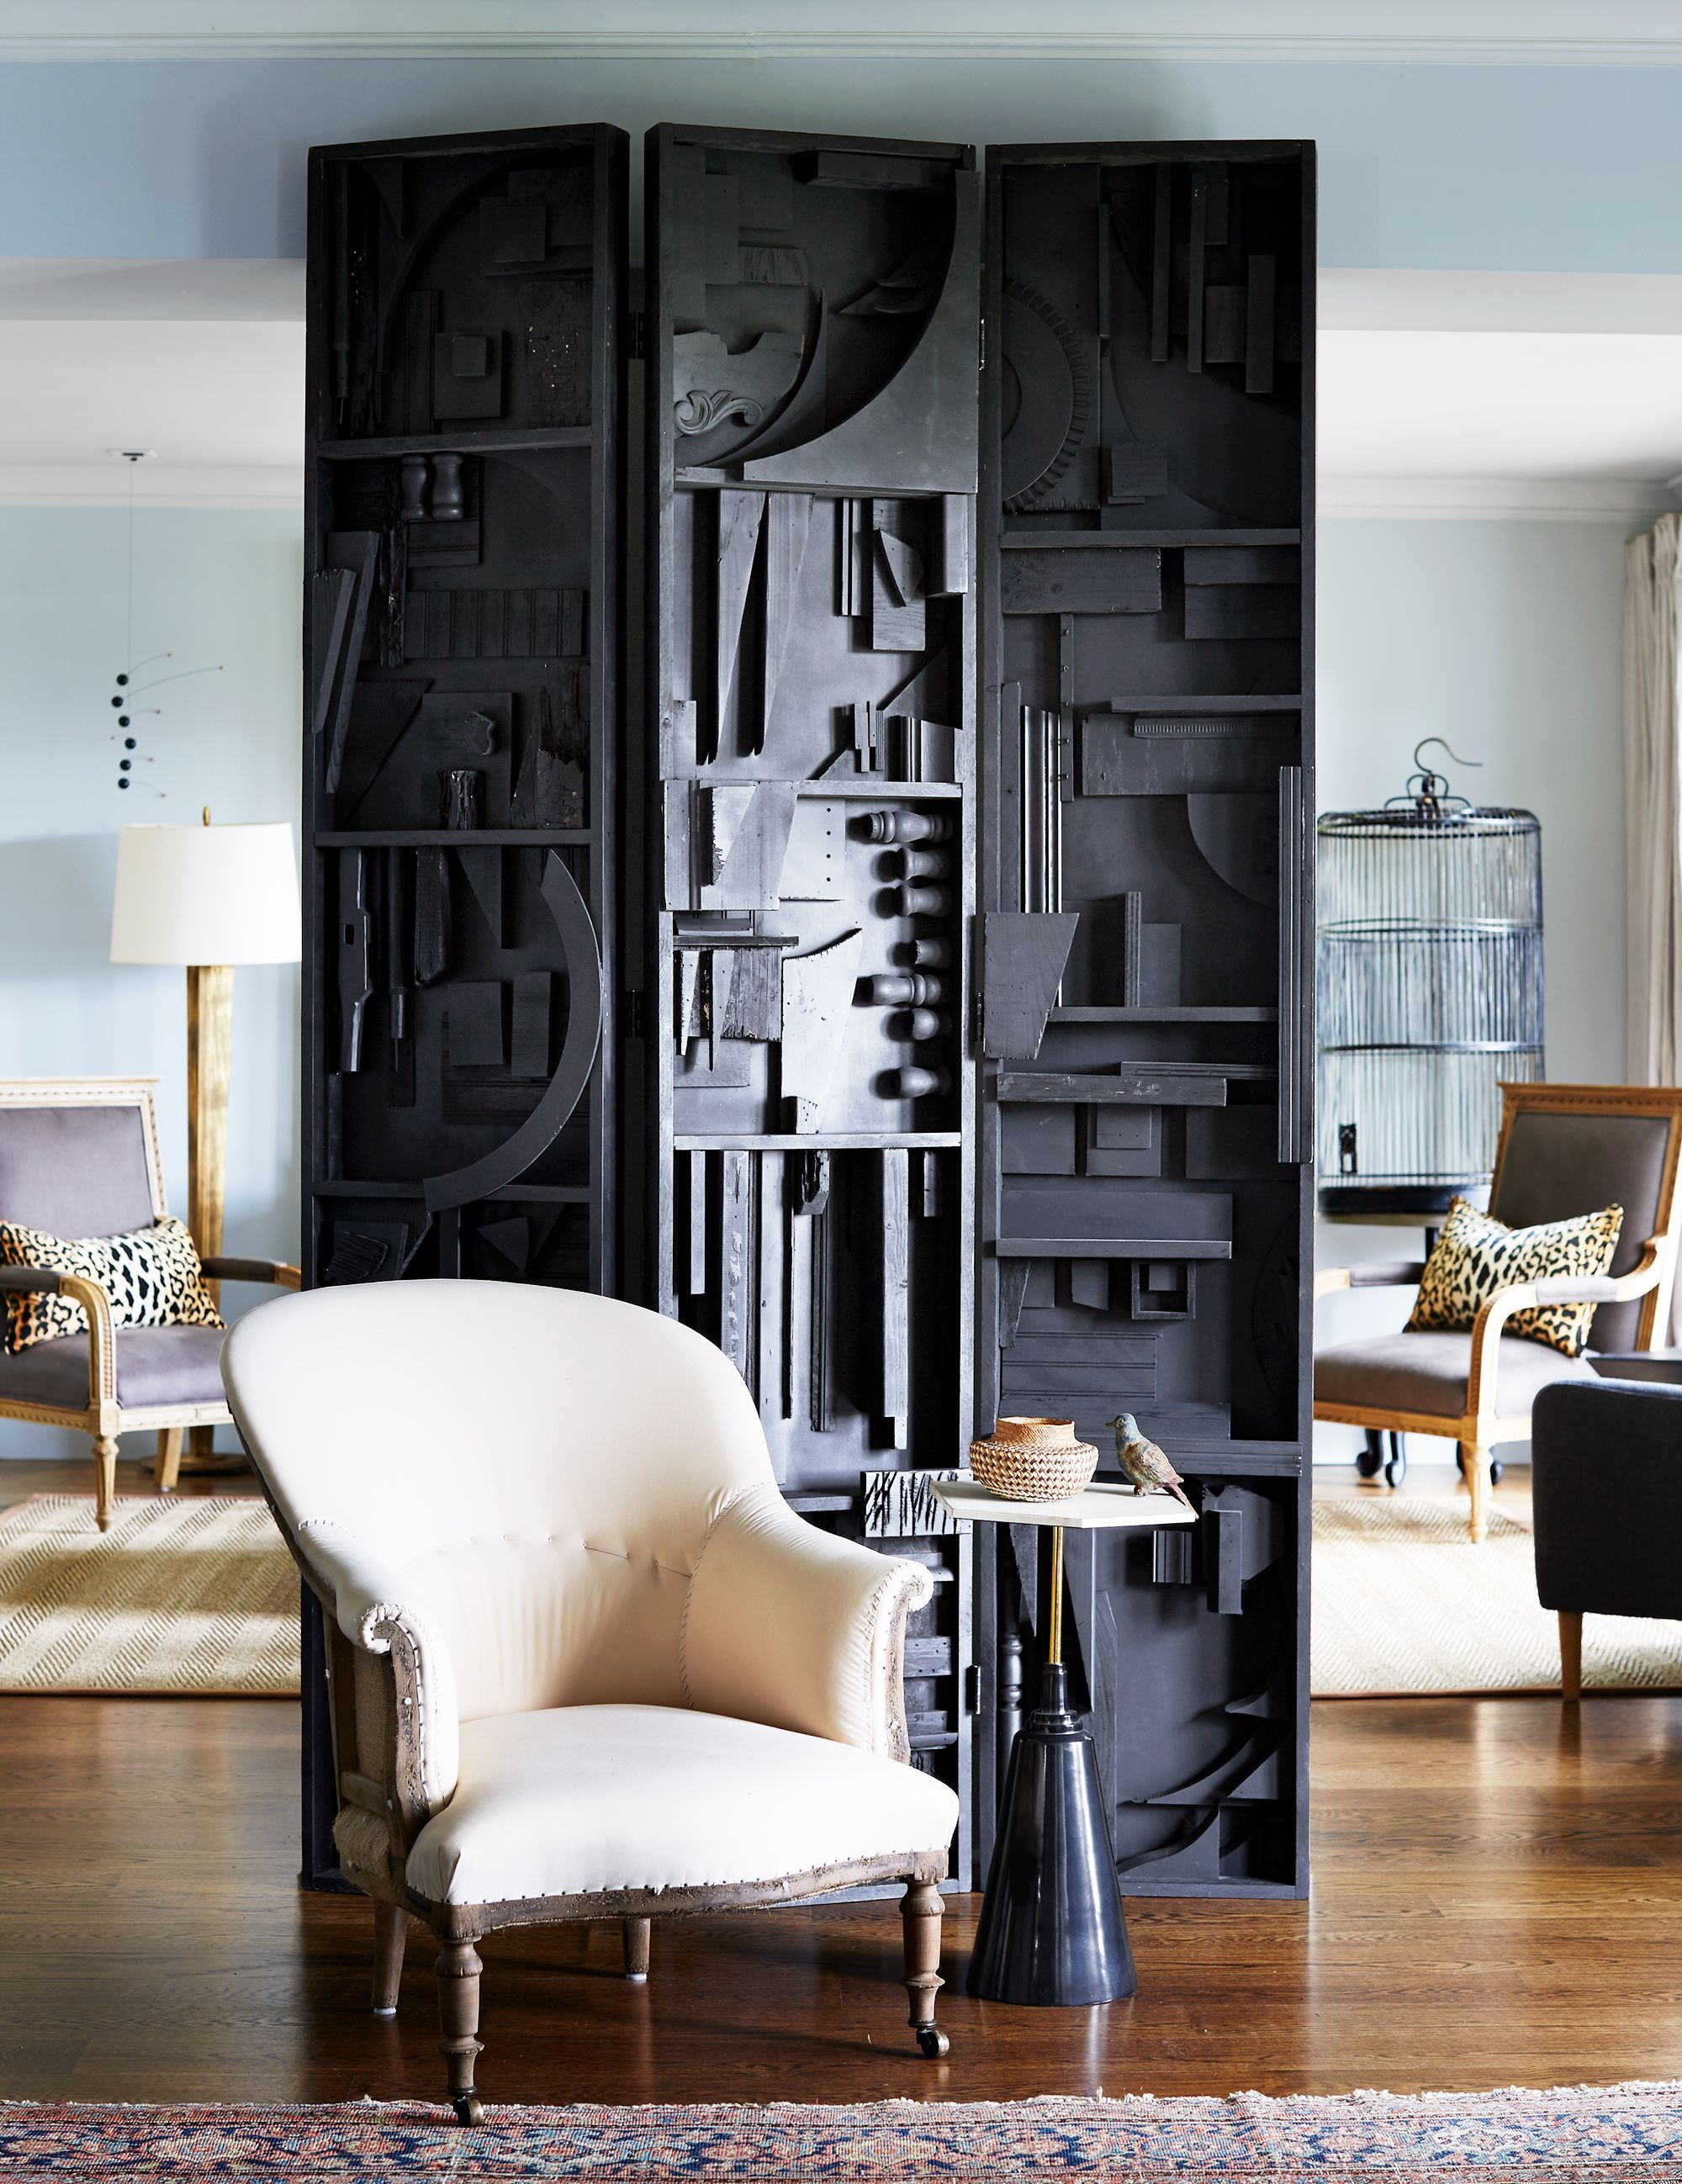 Interior Partition Wall Ideas Beautiful 20 Clever Room Divider Ideas Folding Screen and Wall